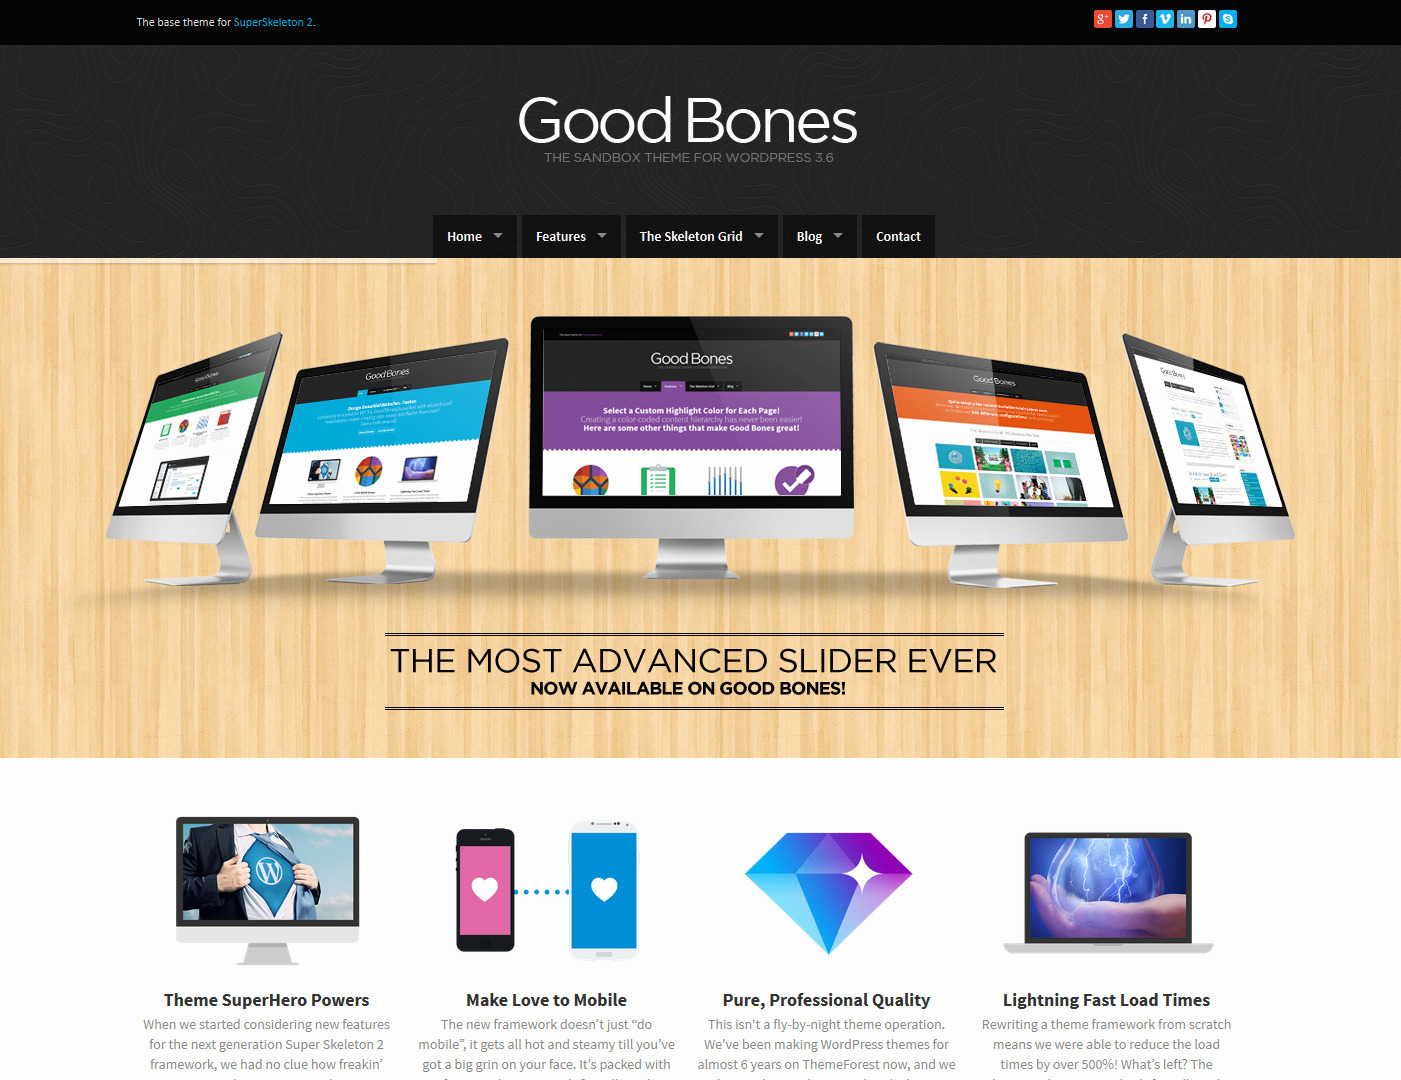 Good Bones: The WP SandBox Theme